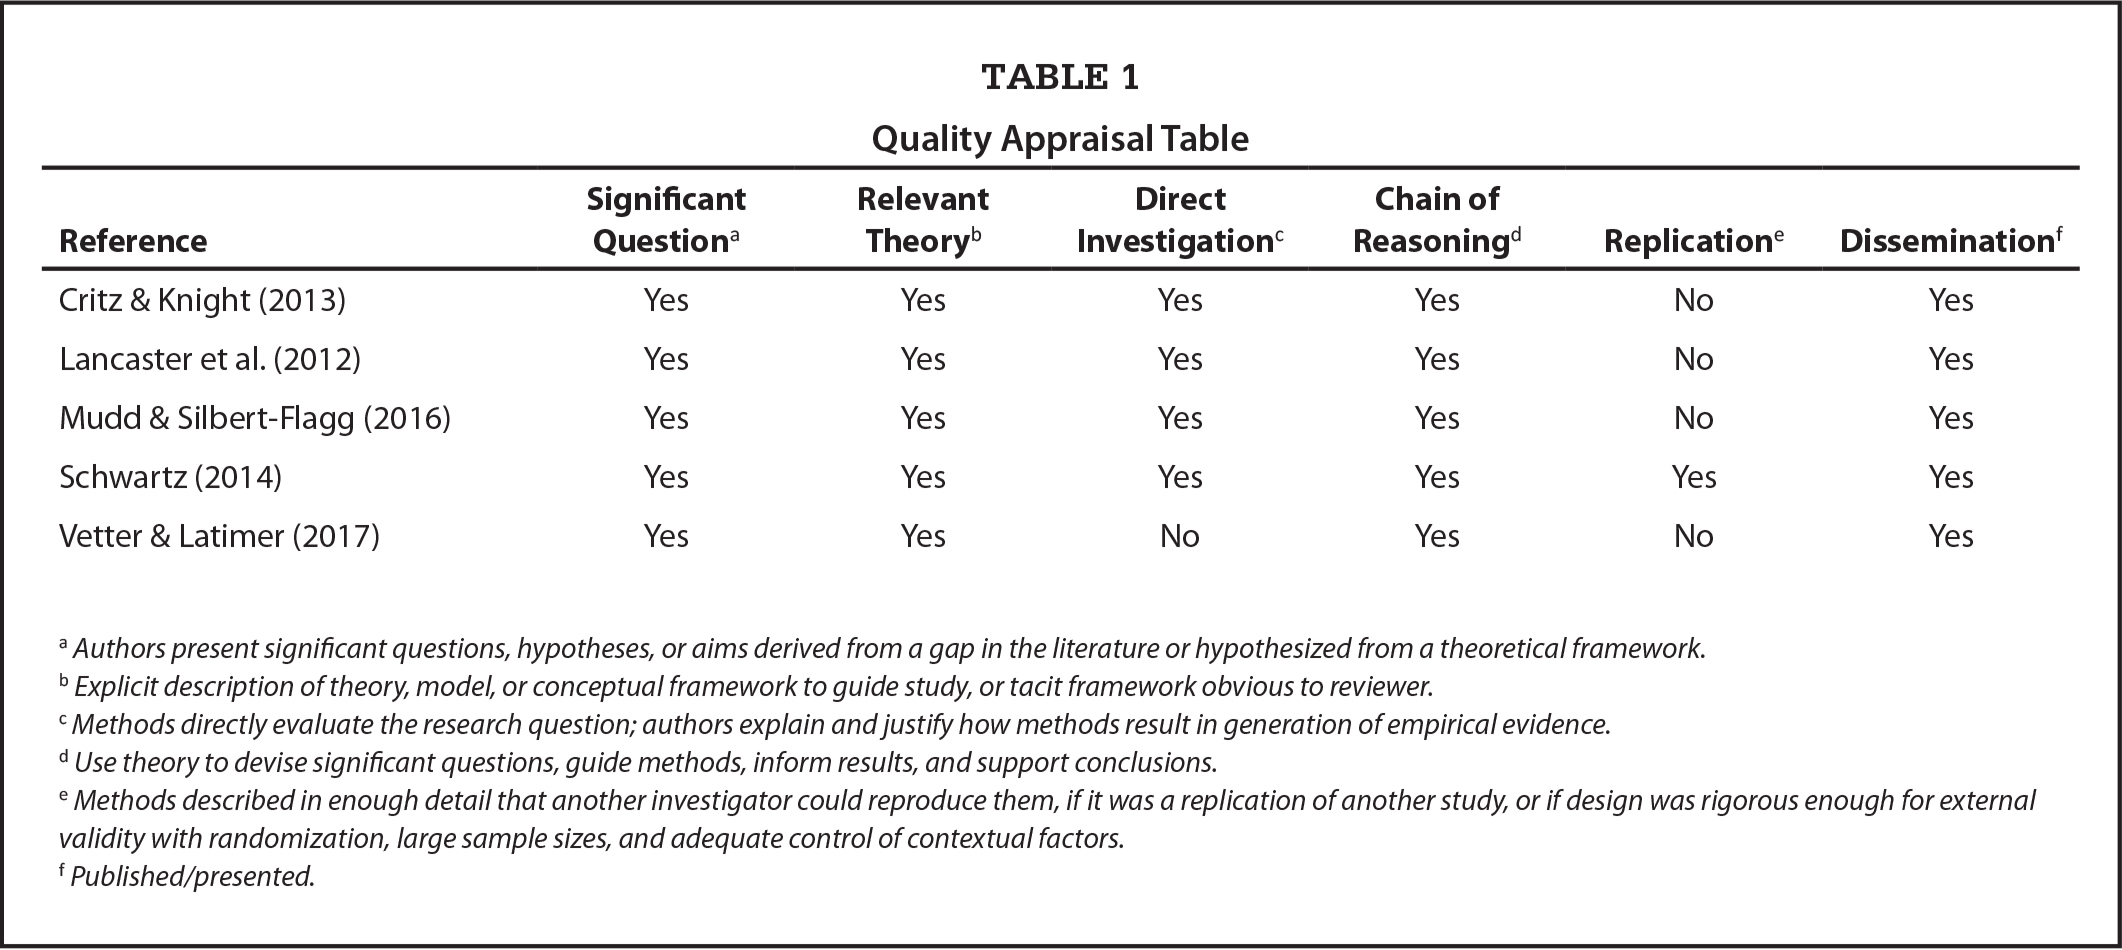 Quality Appraisal Table